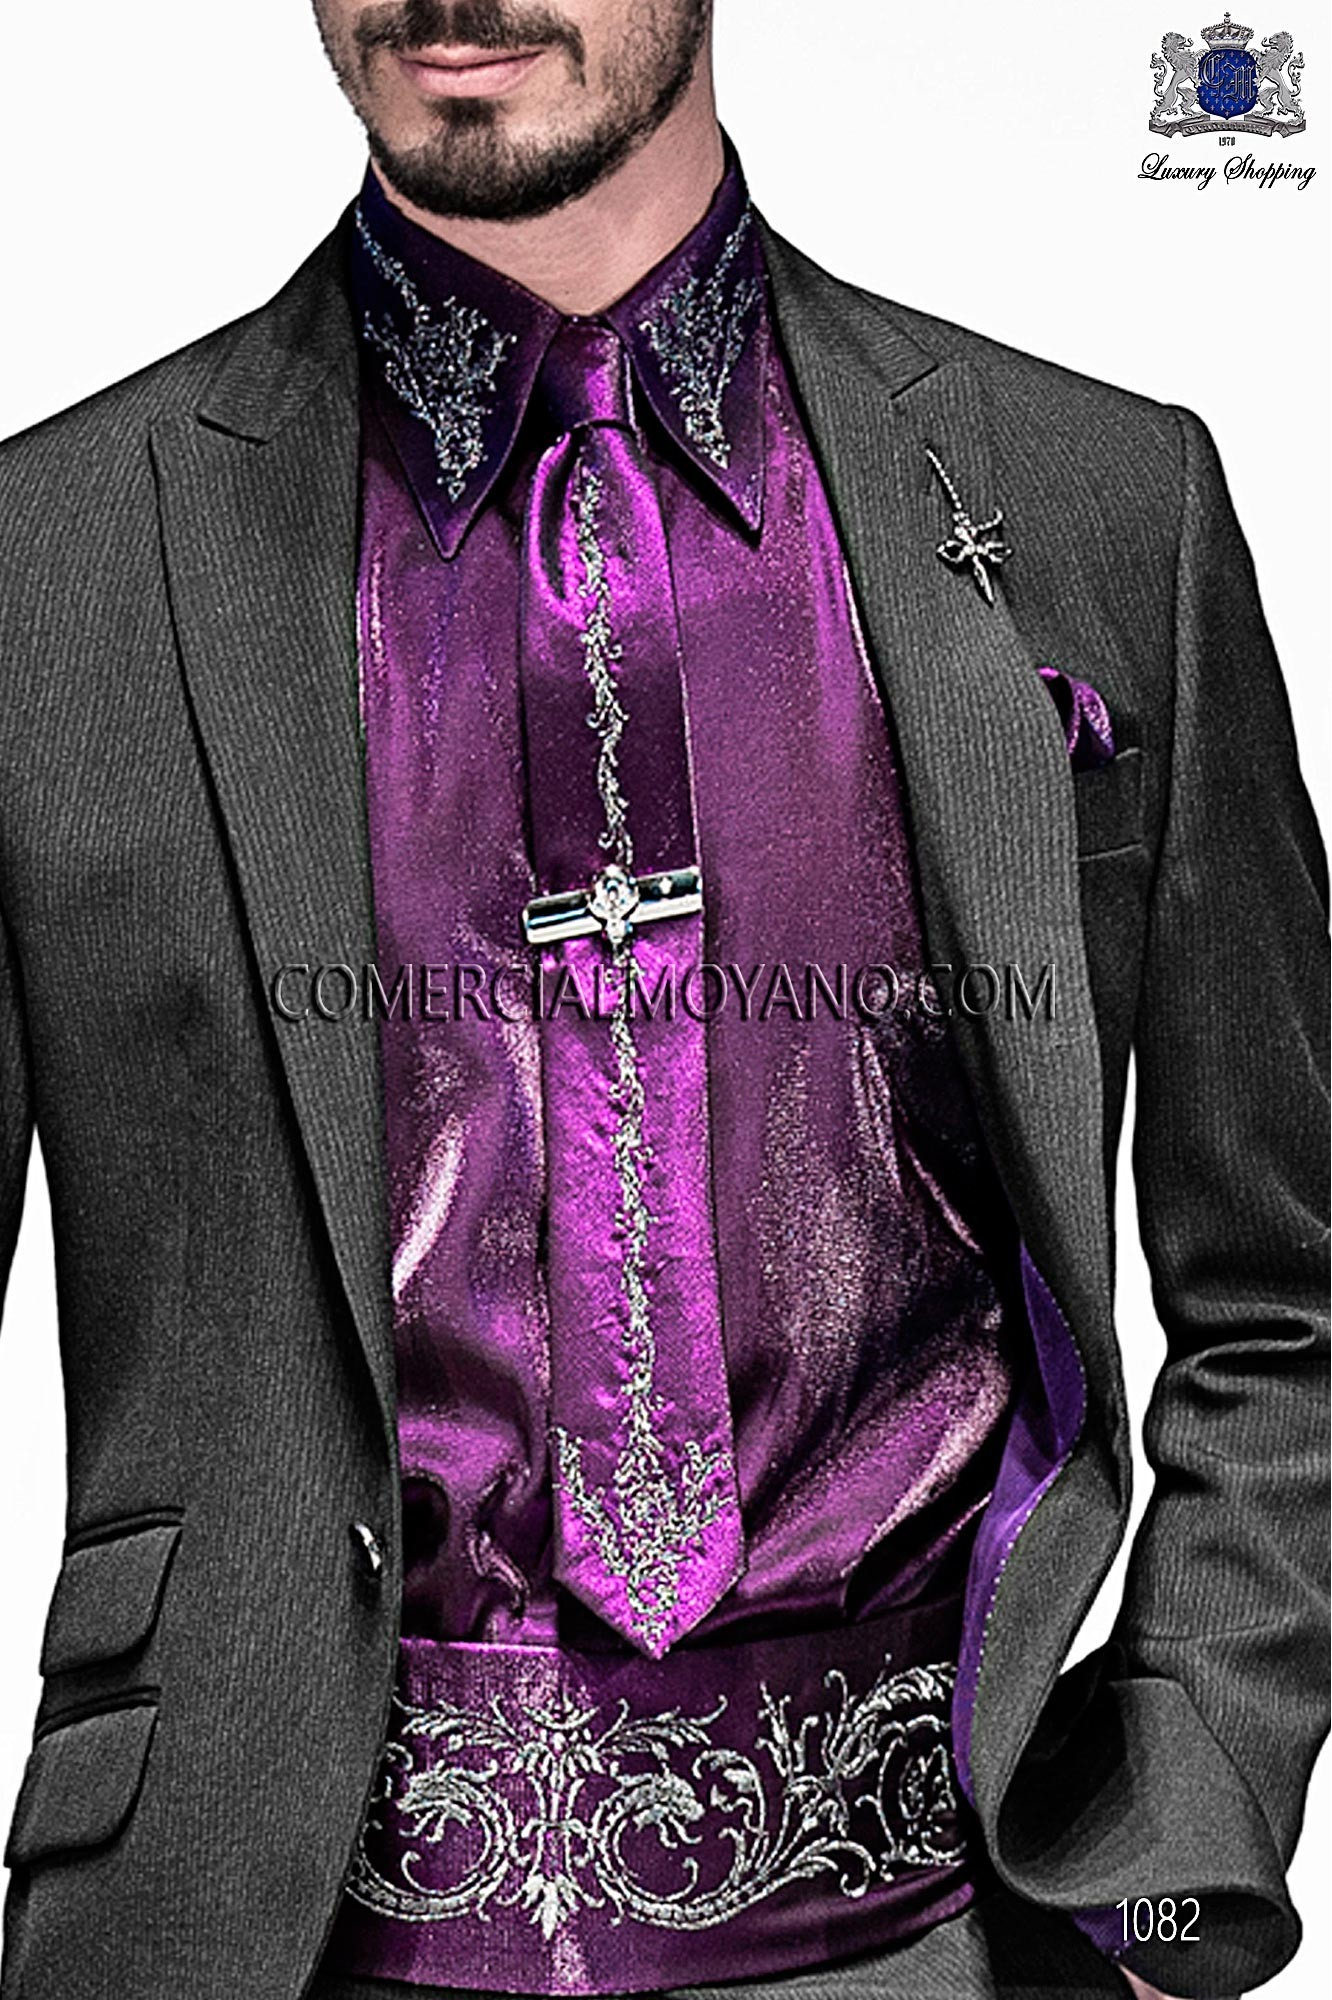 High Fashion Emotion black men wedding suit, model: 1082 Ottavio ...